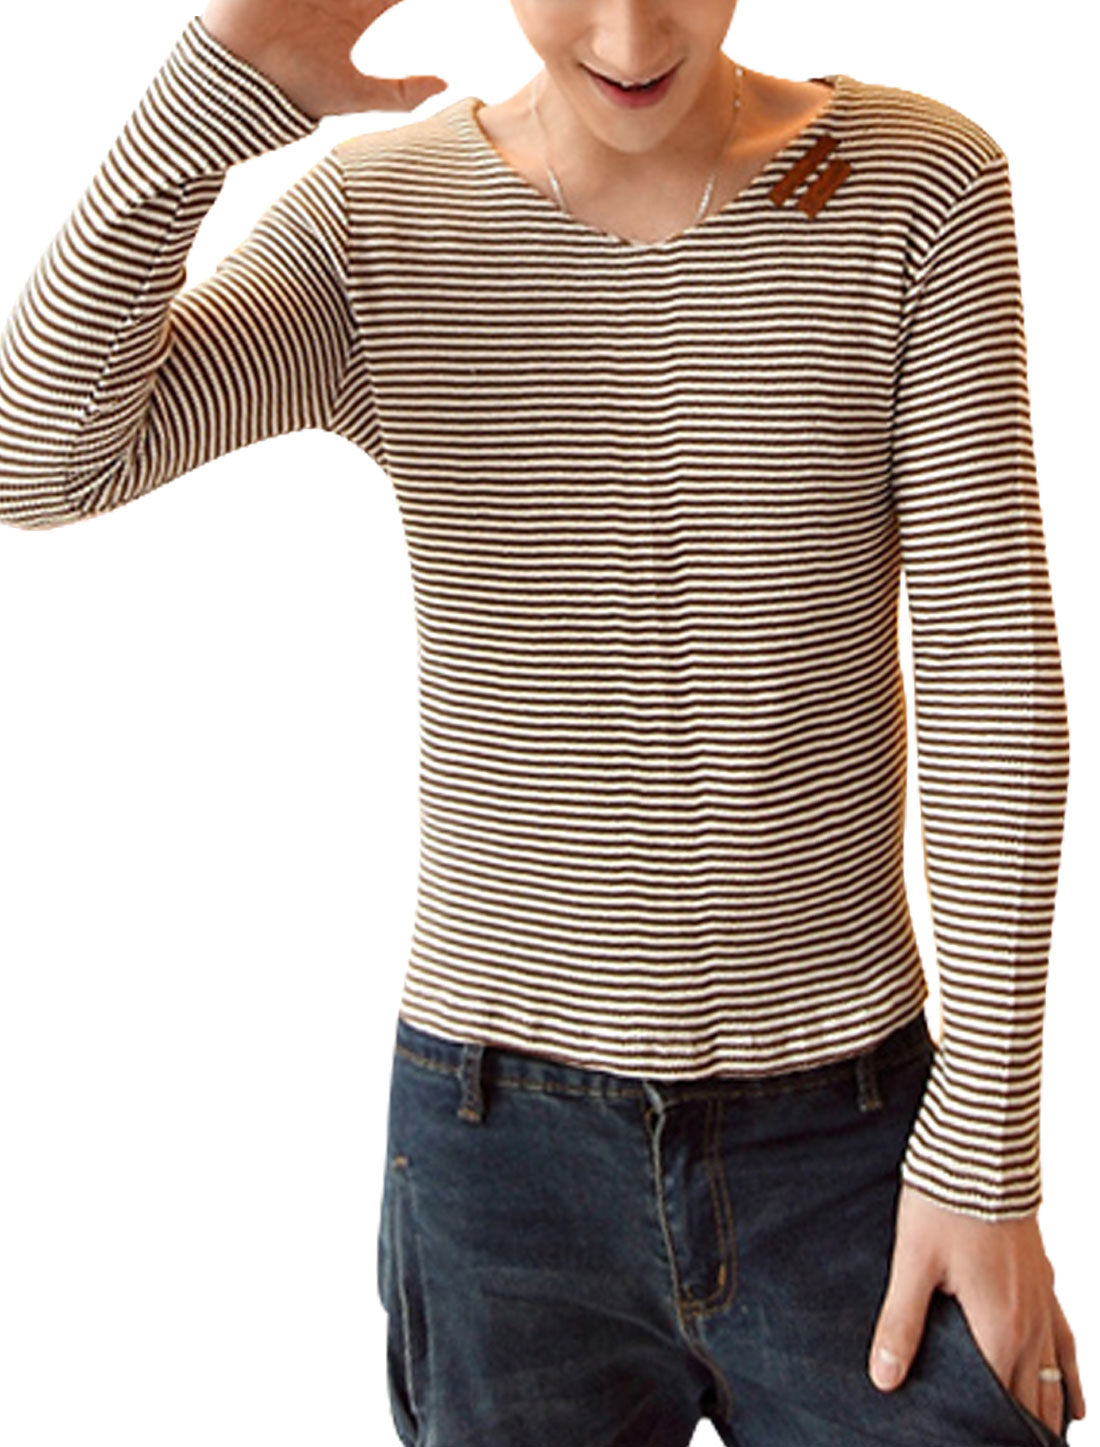 Men V Neck Long Sleeve Stripes Stretchy Slim Fit Top Shirt Coffee White S